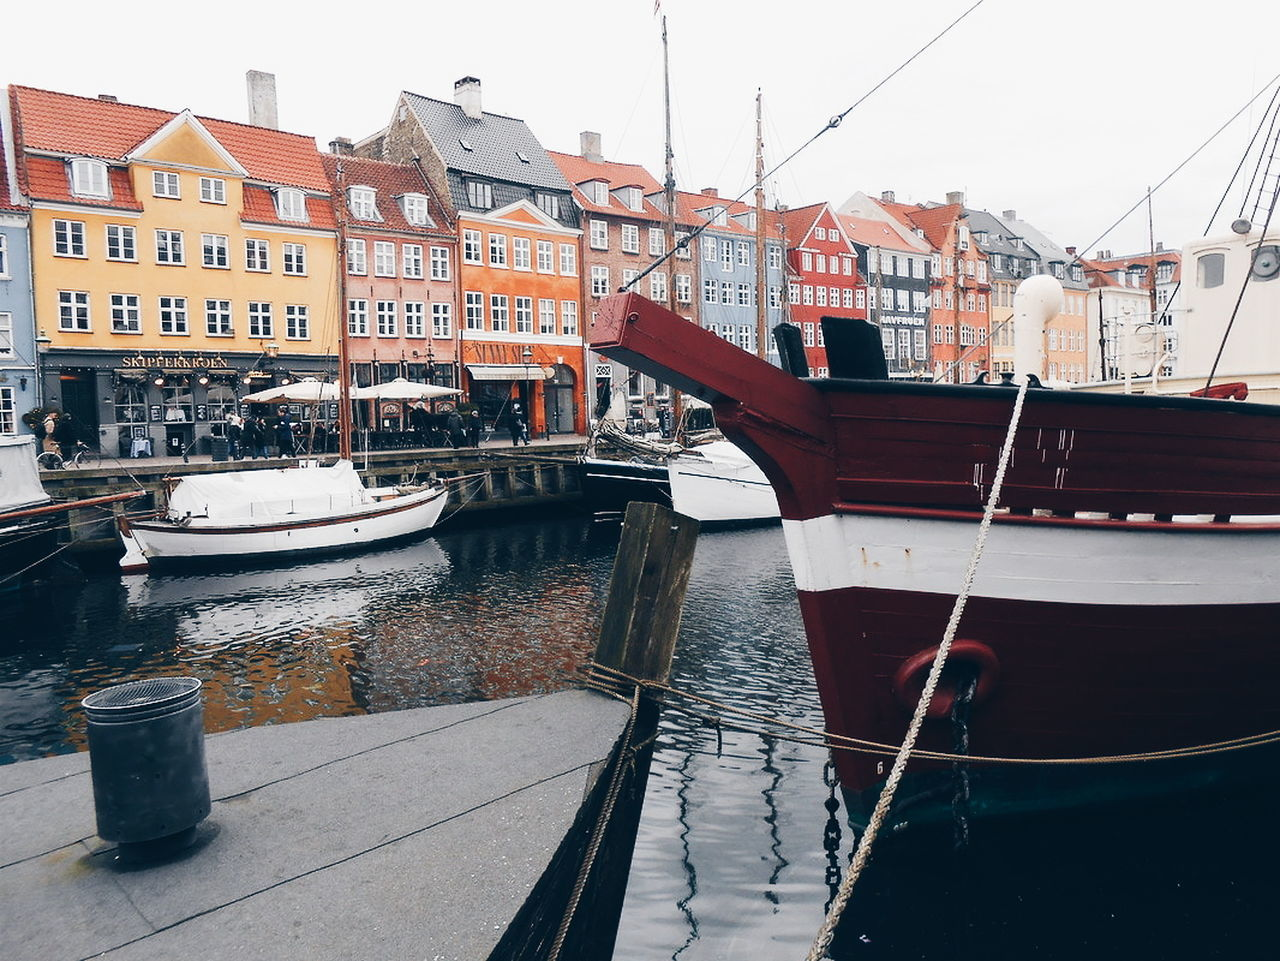 copenhagen - nyhavn Architecture Reflection Building Exterior Water Built Structure Canal City Nautical Vessel One Person Outdoors Bridge - Man Made Structure People Day Gondola - Traditional Boat Gondolier Copenhagen Nyhavn Denmark Danmark København Colors Bridge Adventure